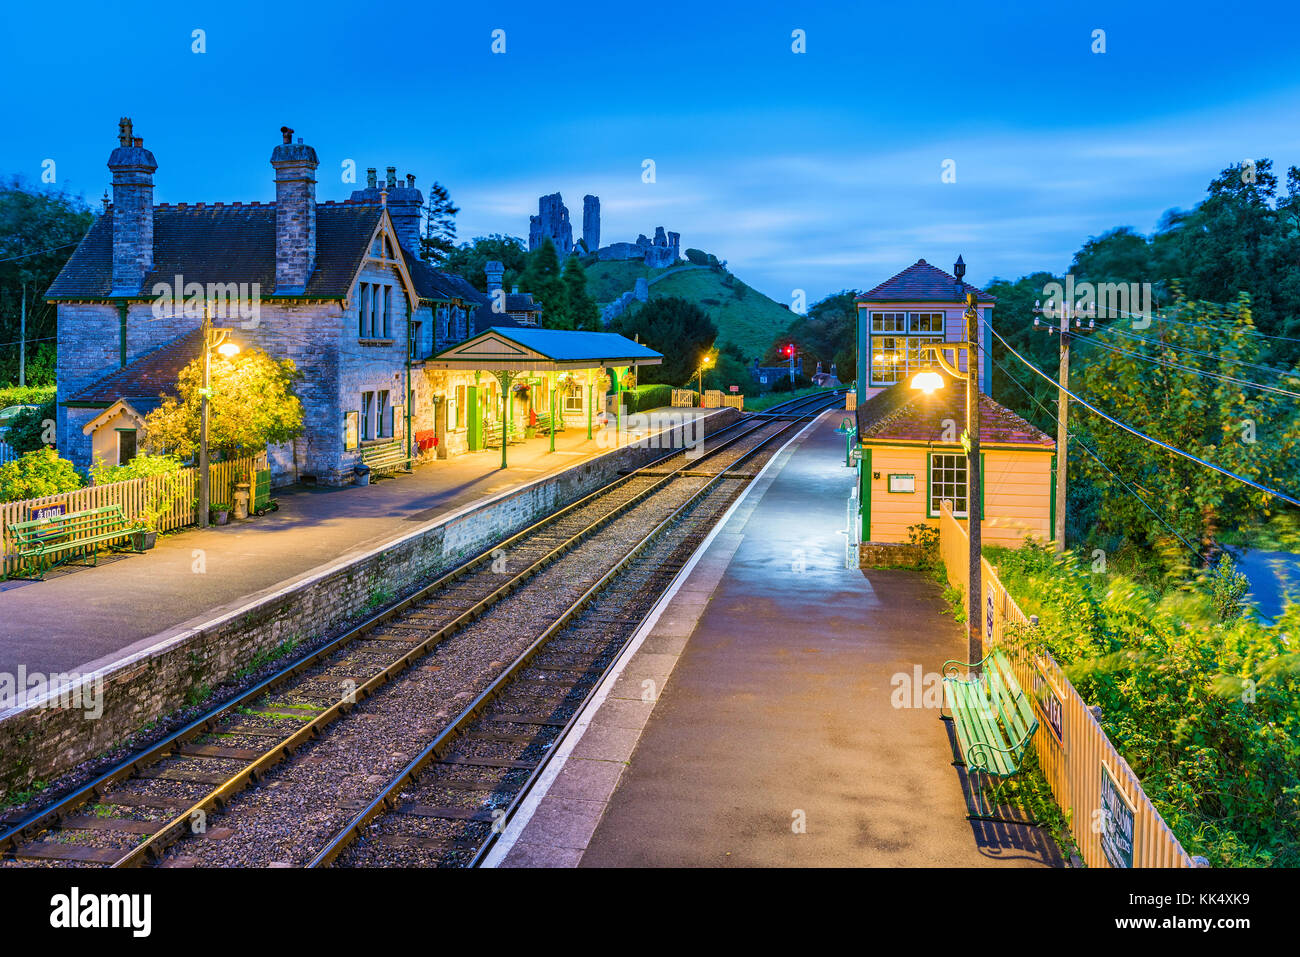 CORFE, UNITED KINGDOM - SEPTEMBER 08: This is an evening view of the Corfe Castle railway station traditional medieval - Stock Image